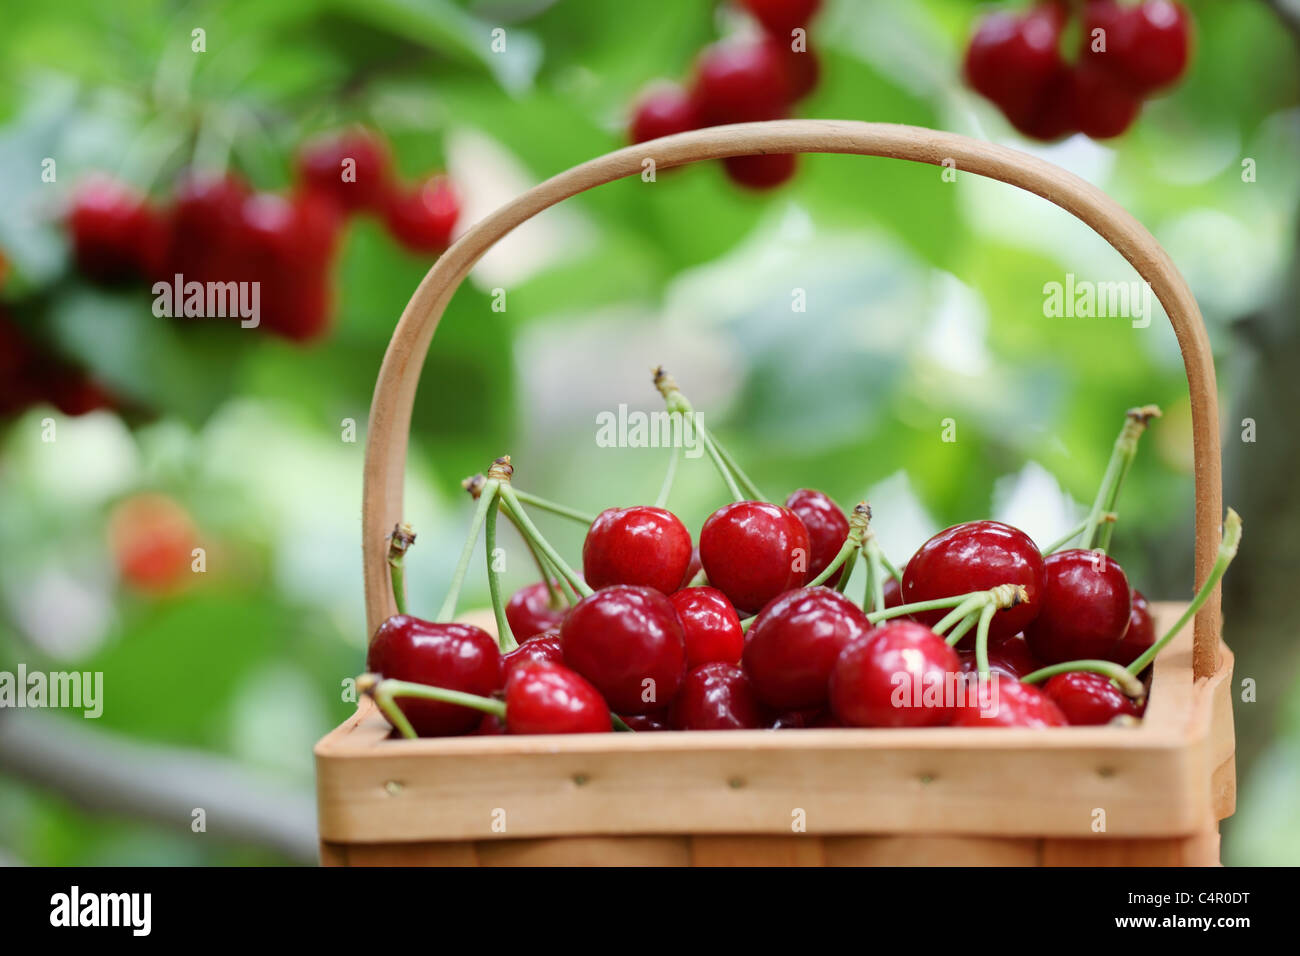 Fresh red cherries on a orchard scene ,Shallow Dof. - Stock Image